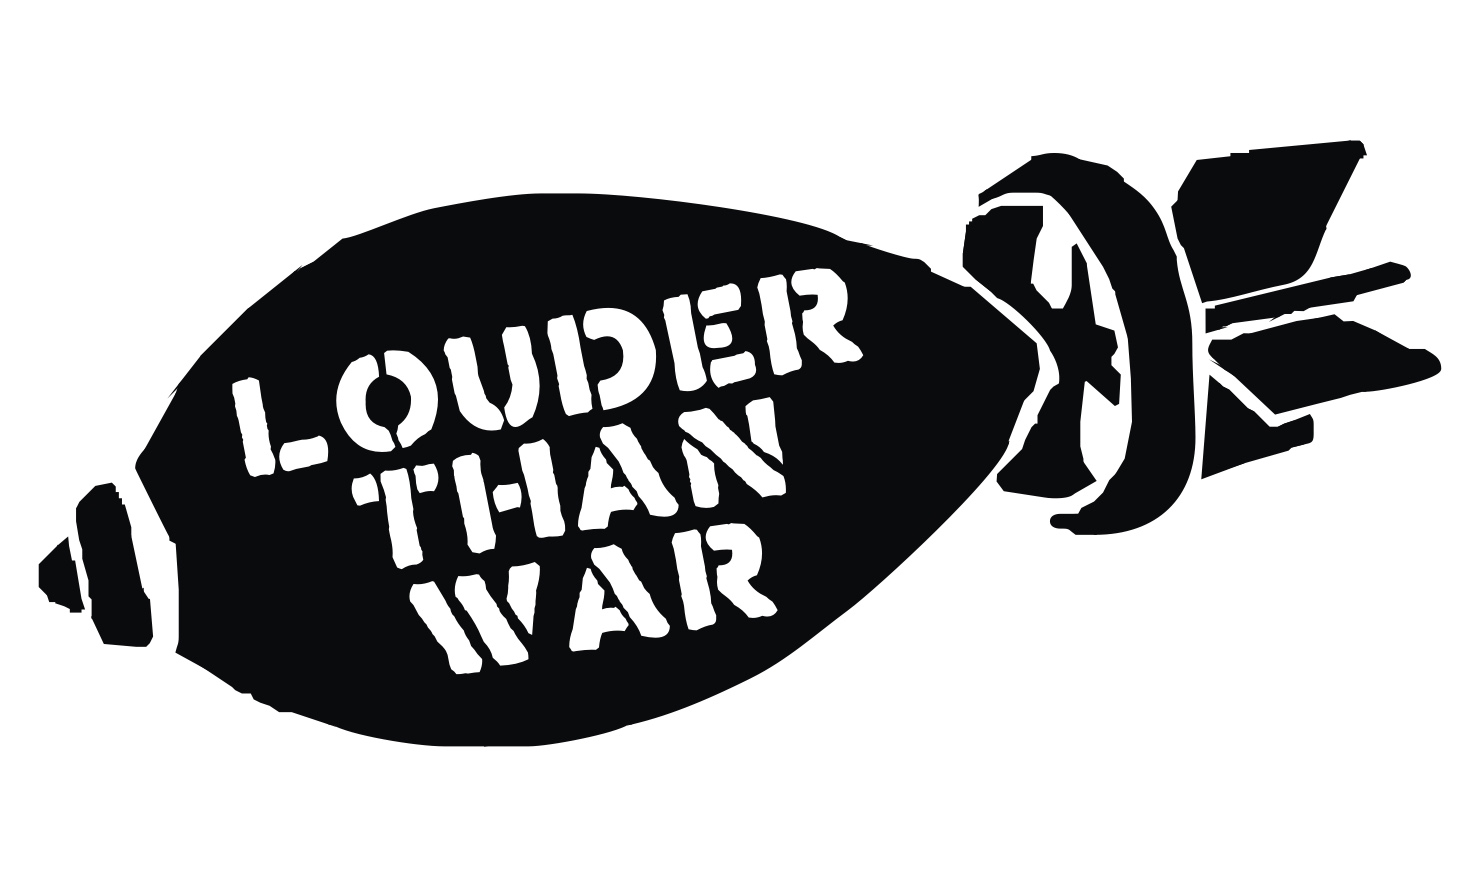 """One of the most interesting and upbeat singles we've had the pleasure of premiering this year"" - Louderthanwar"